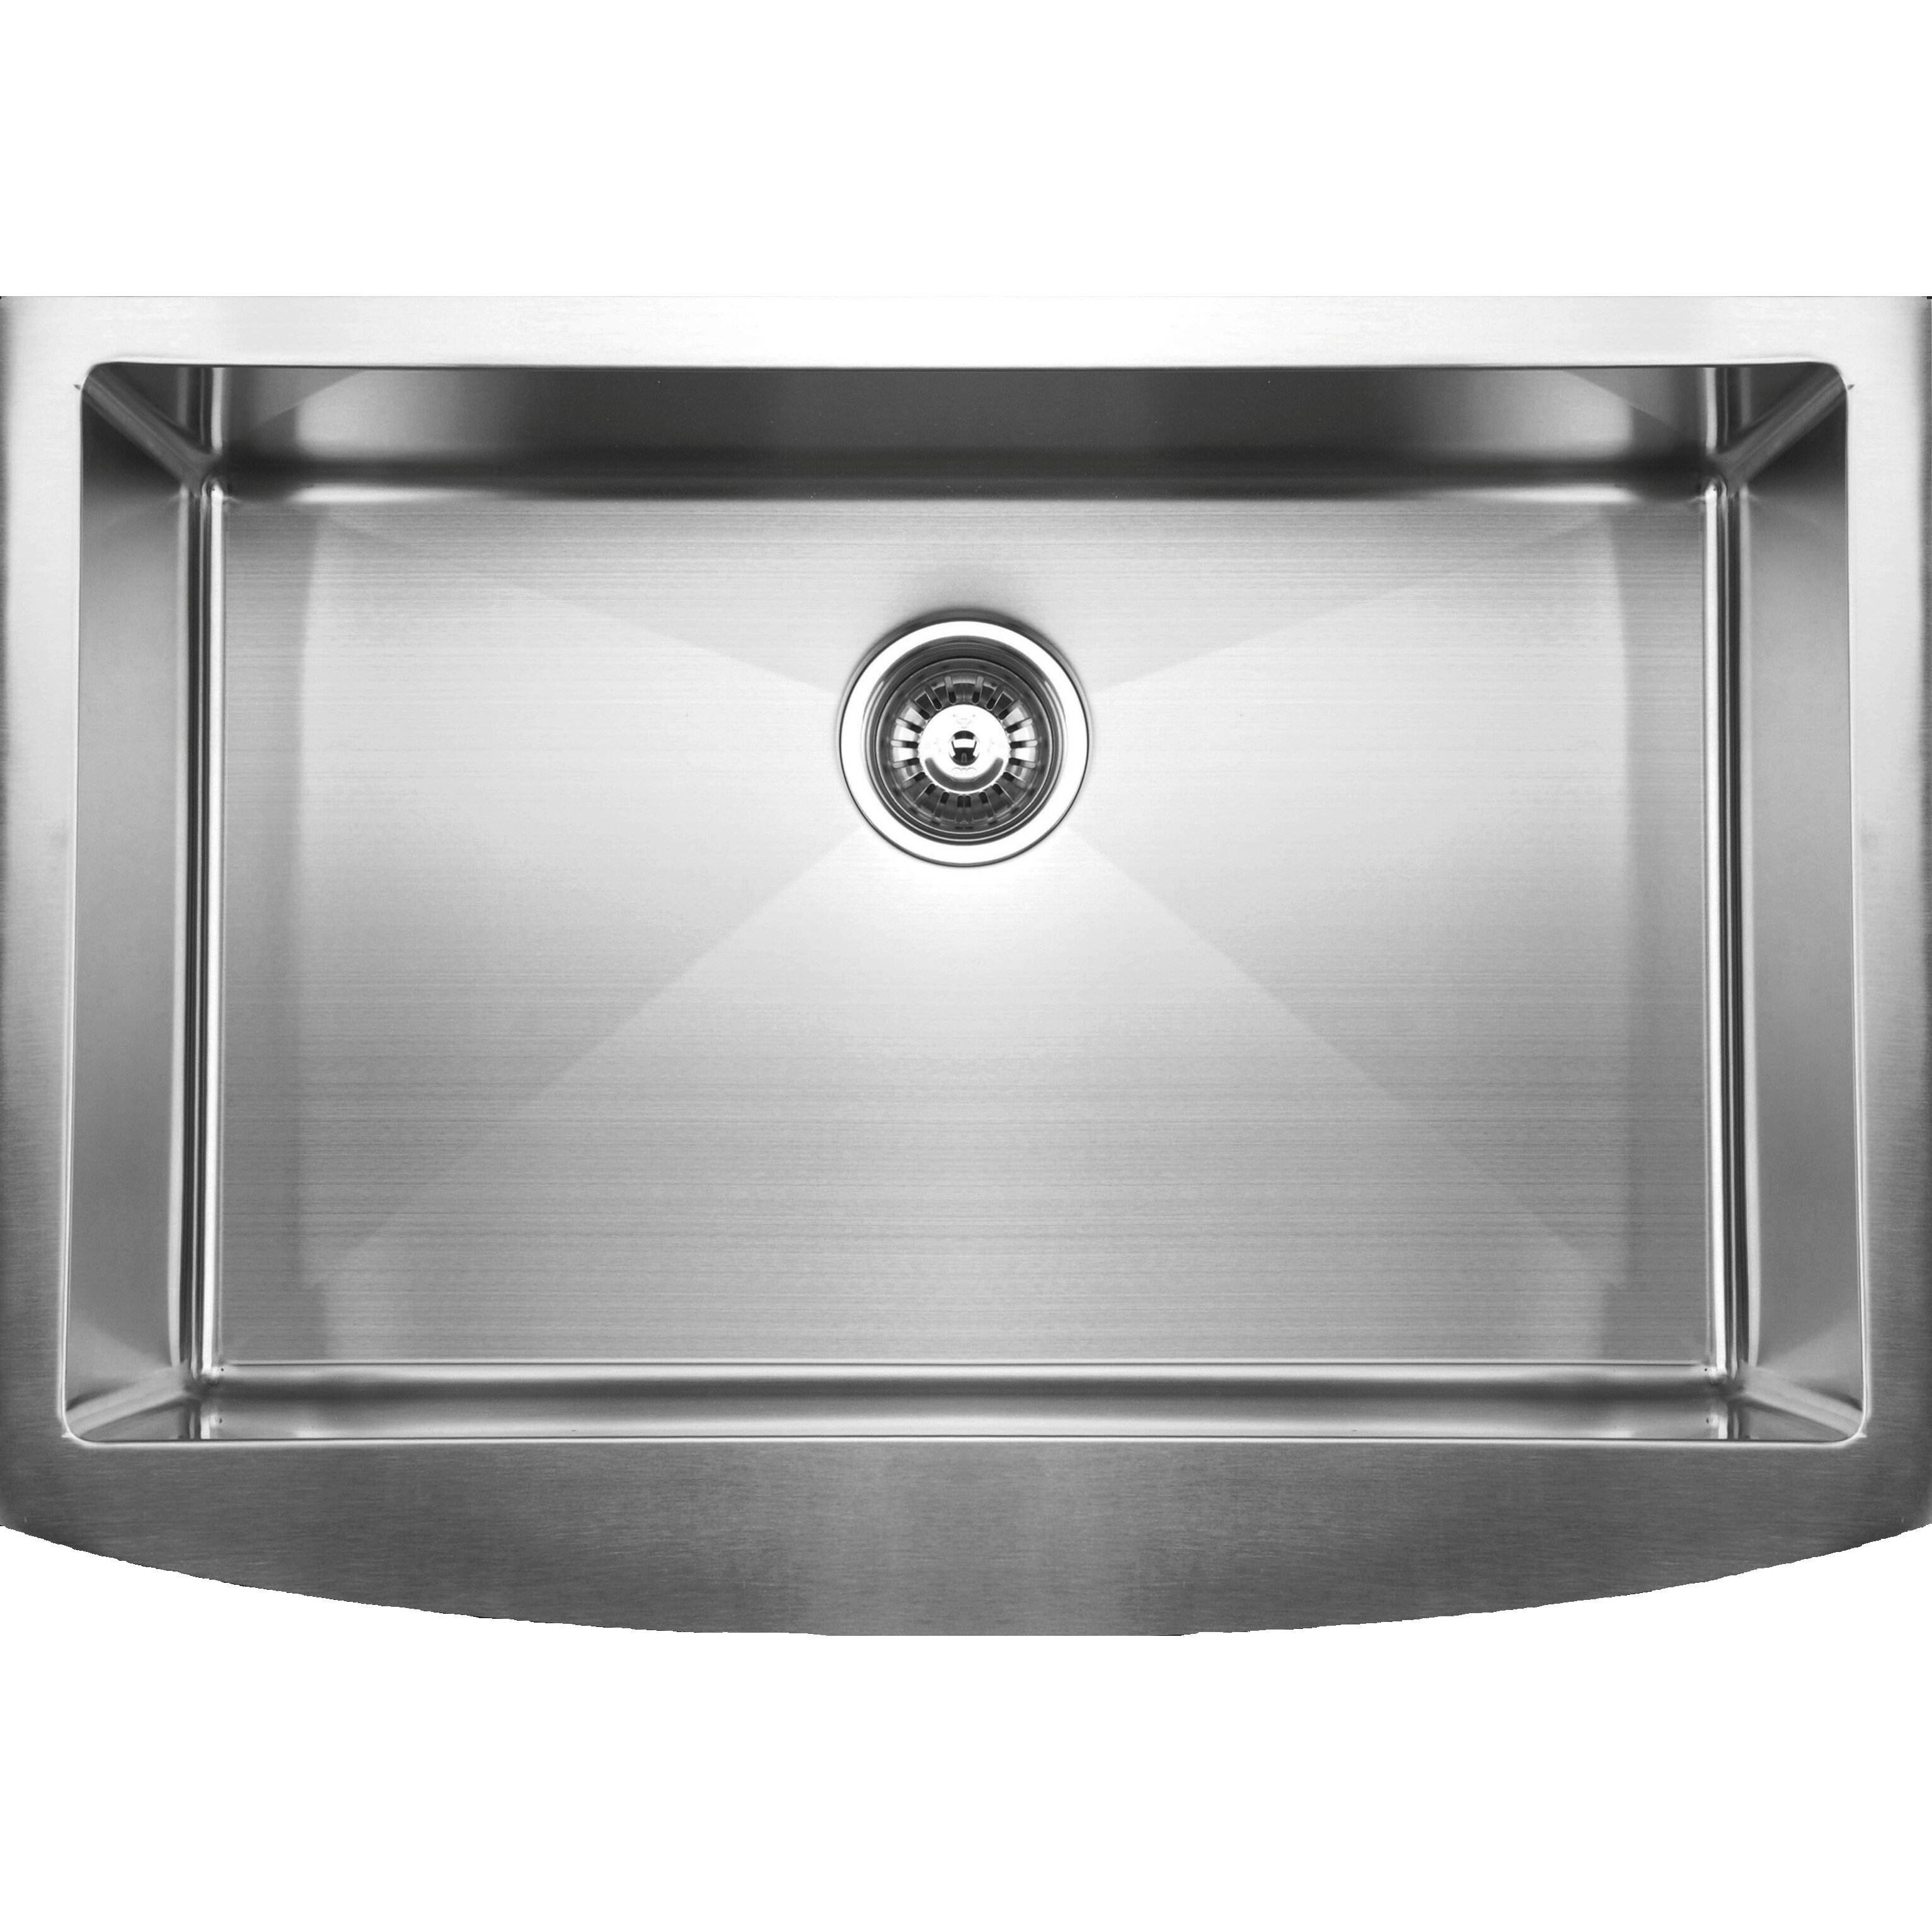 White Kitchen Sink Undermount Ukinox 33 X 2225 Curved Apron Front Single Bowl Undermount